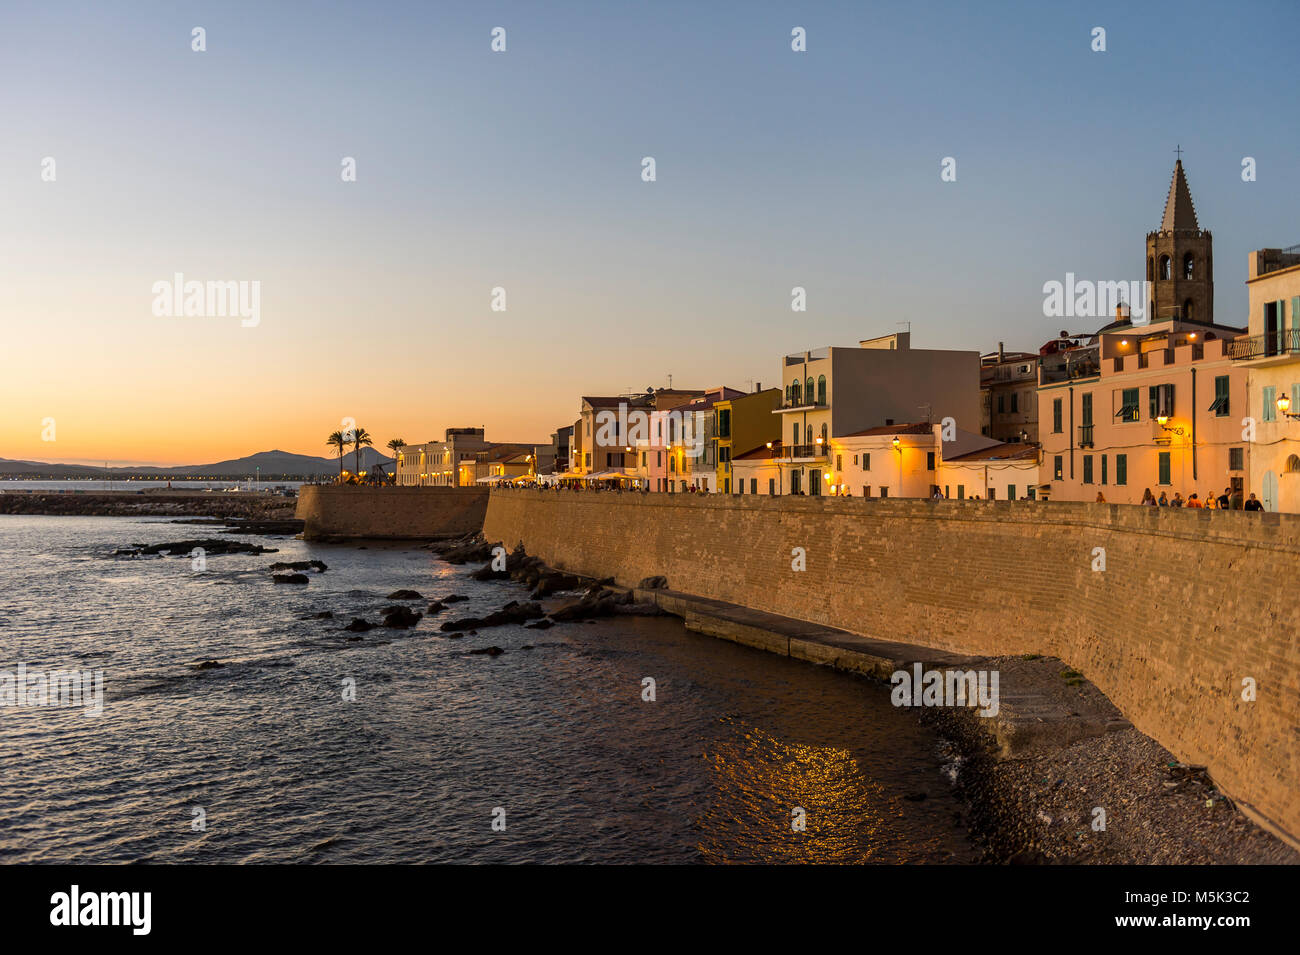 Waterfront in the coastal town of Alghero after sunset, Sardinia, Italy Stock Photo